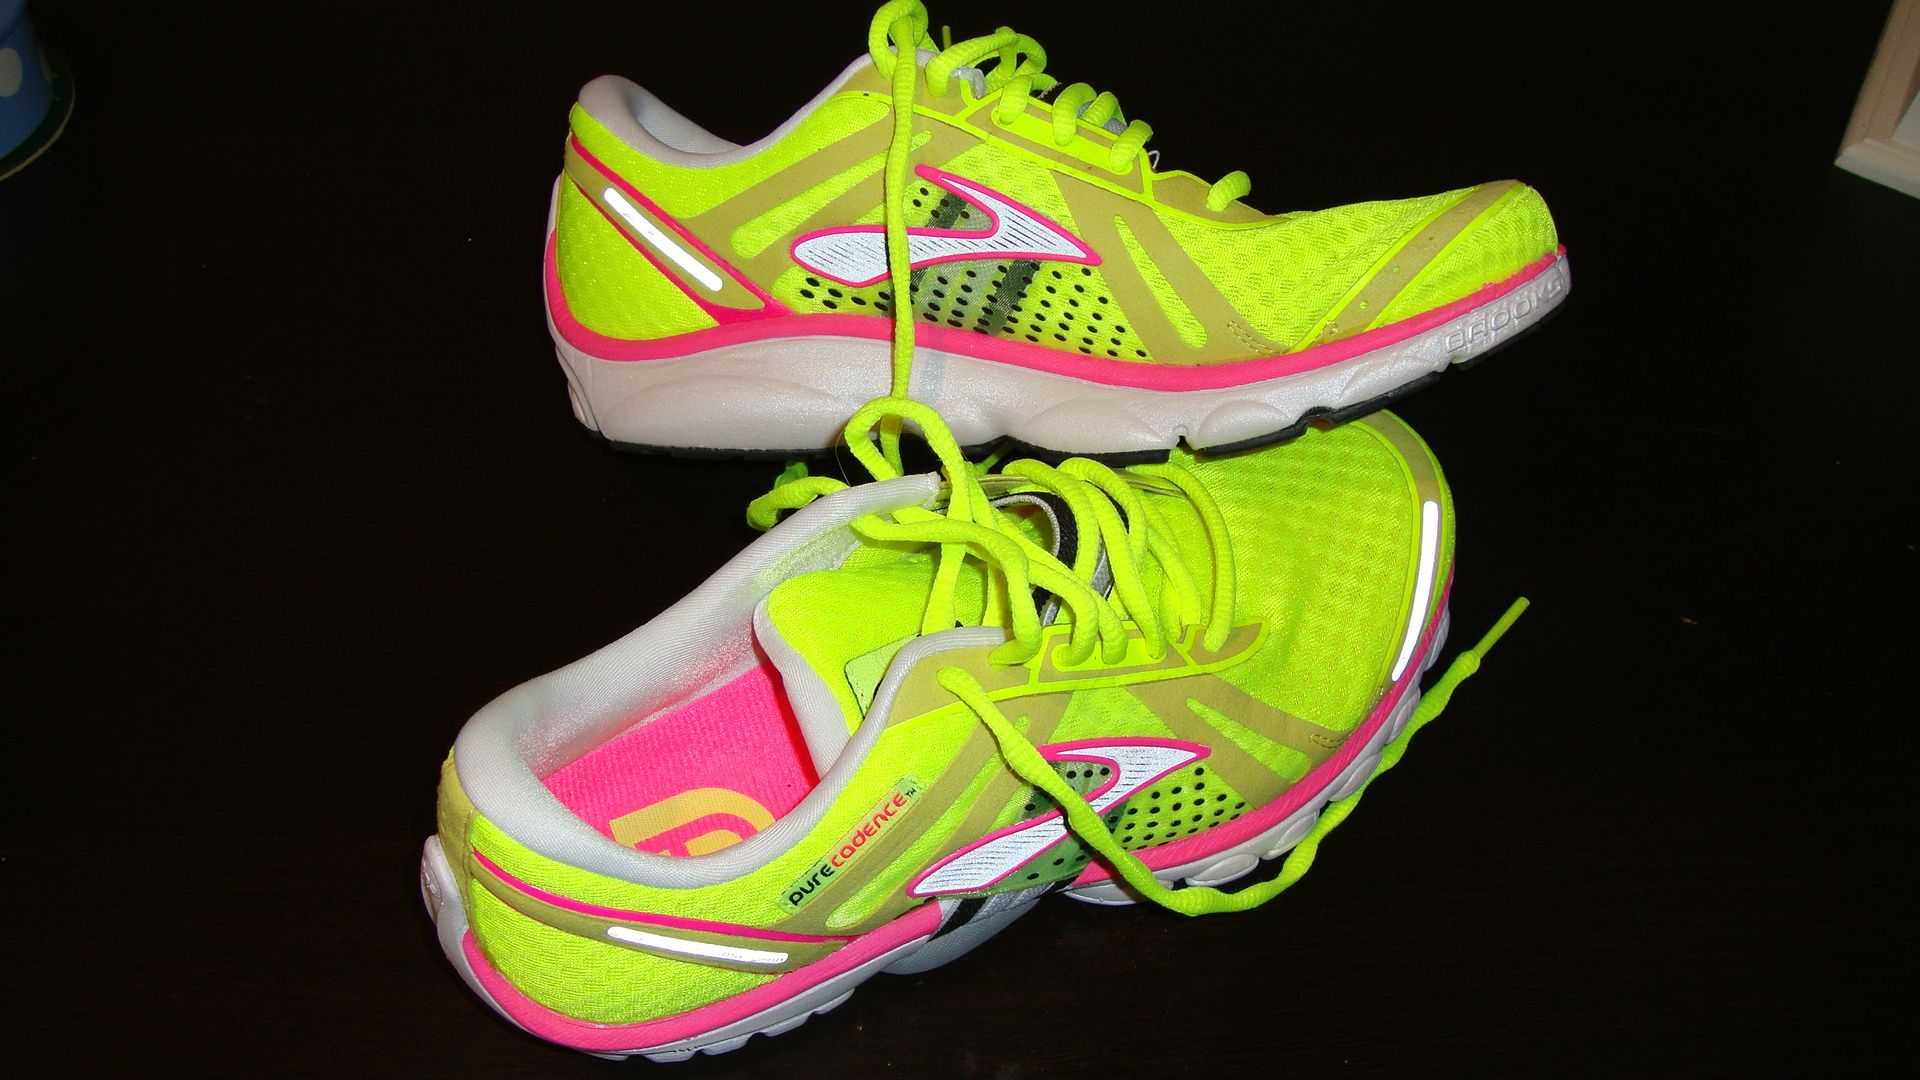 Pin By Kim Gesumaria On I Want Brooks Running Shoes Light Running Shoes Neon Running Shoes